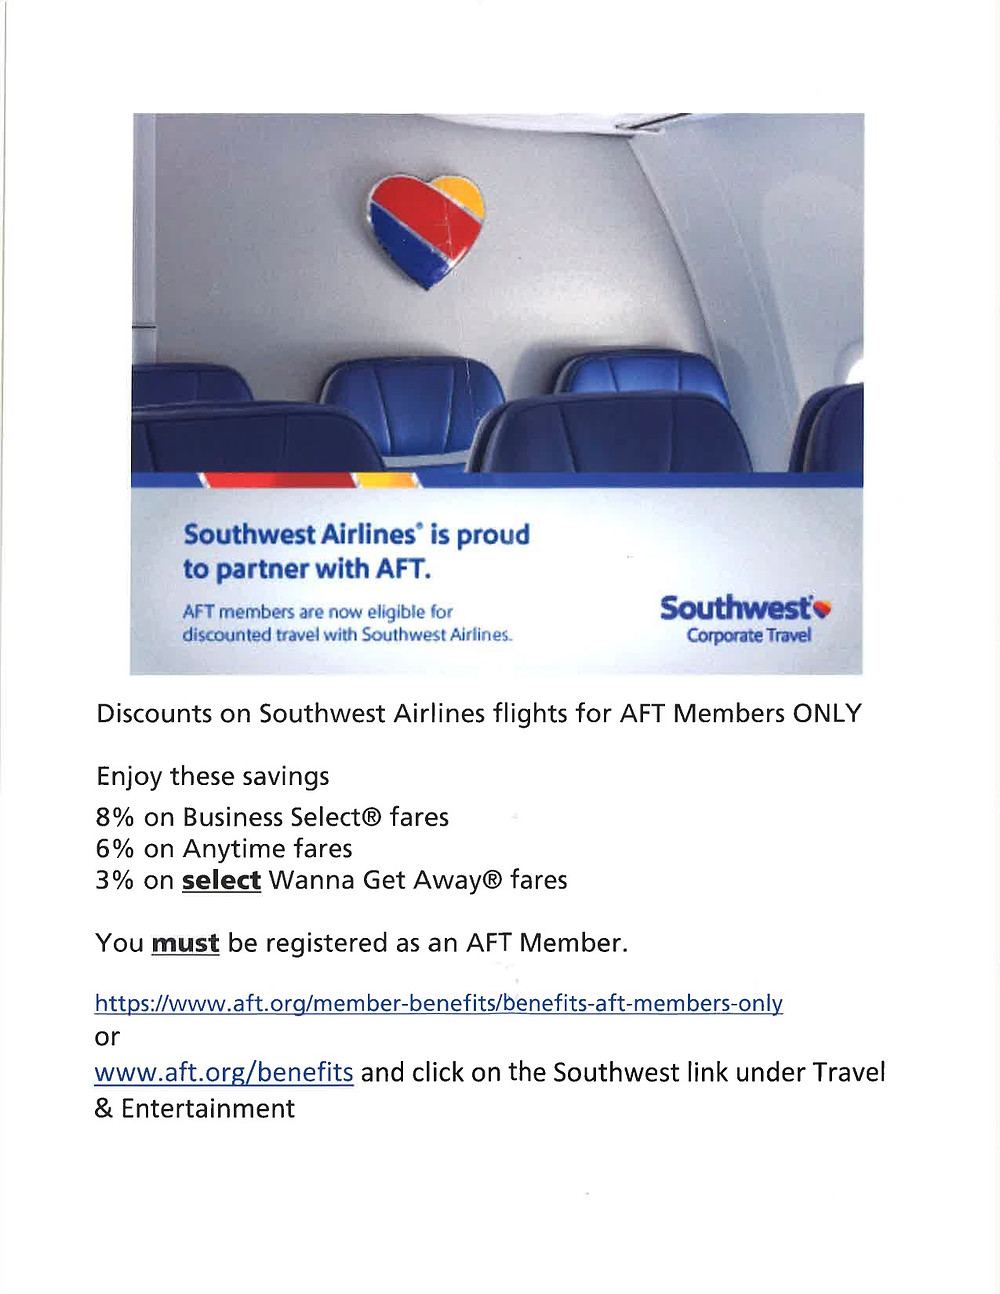 Note: you will need to use the Southwest Airlines corporate ID (99205643) to take advantage of this discount.